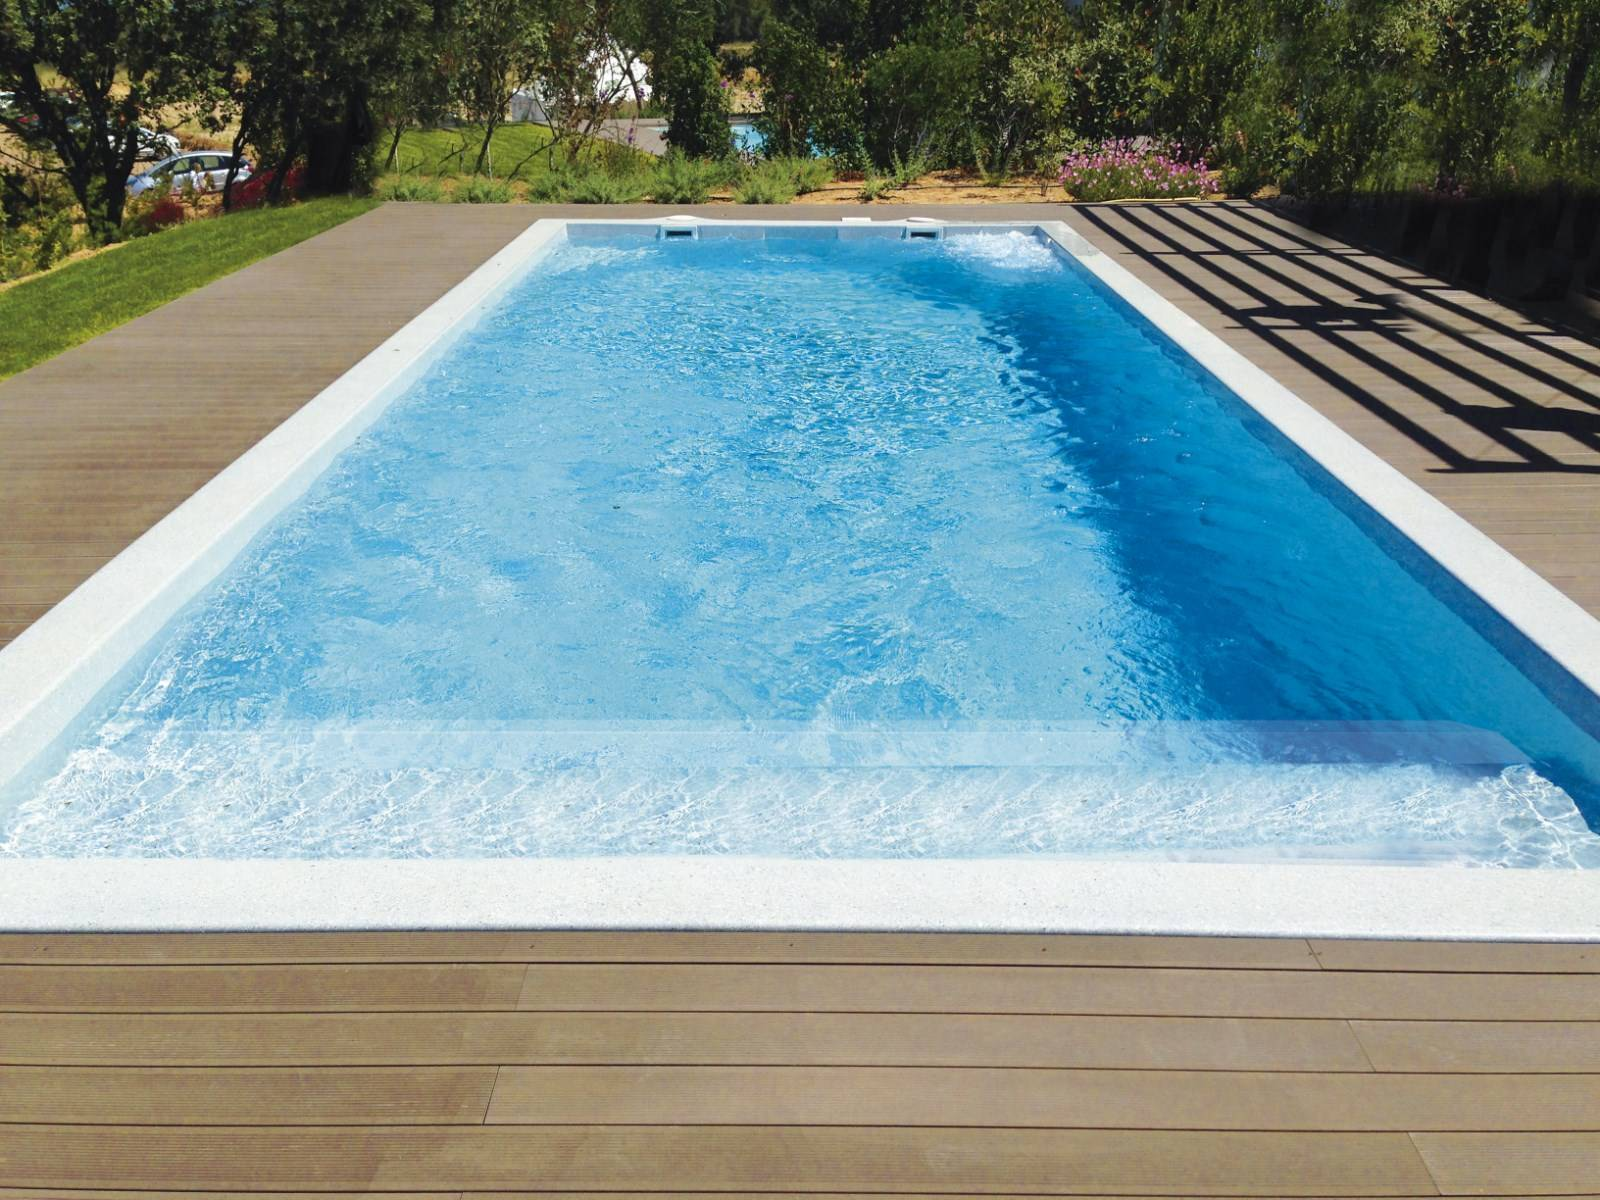 Piscine coque polyester freedom mod le riviera for Piscine 4 par 8